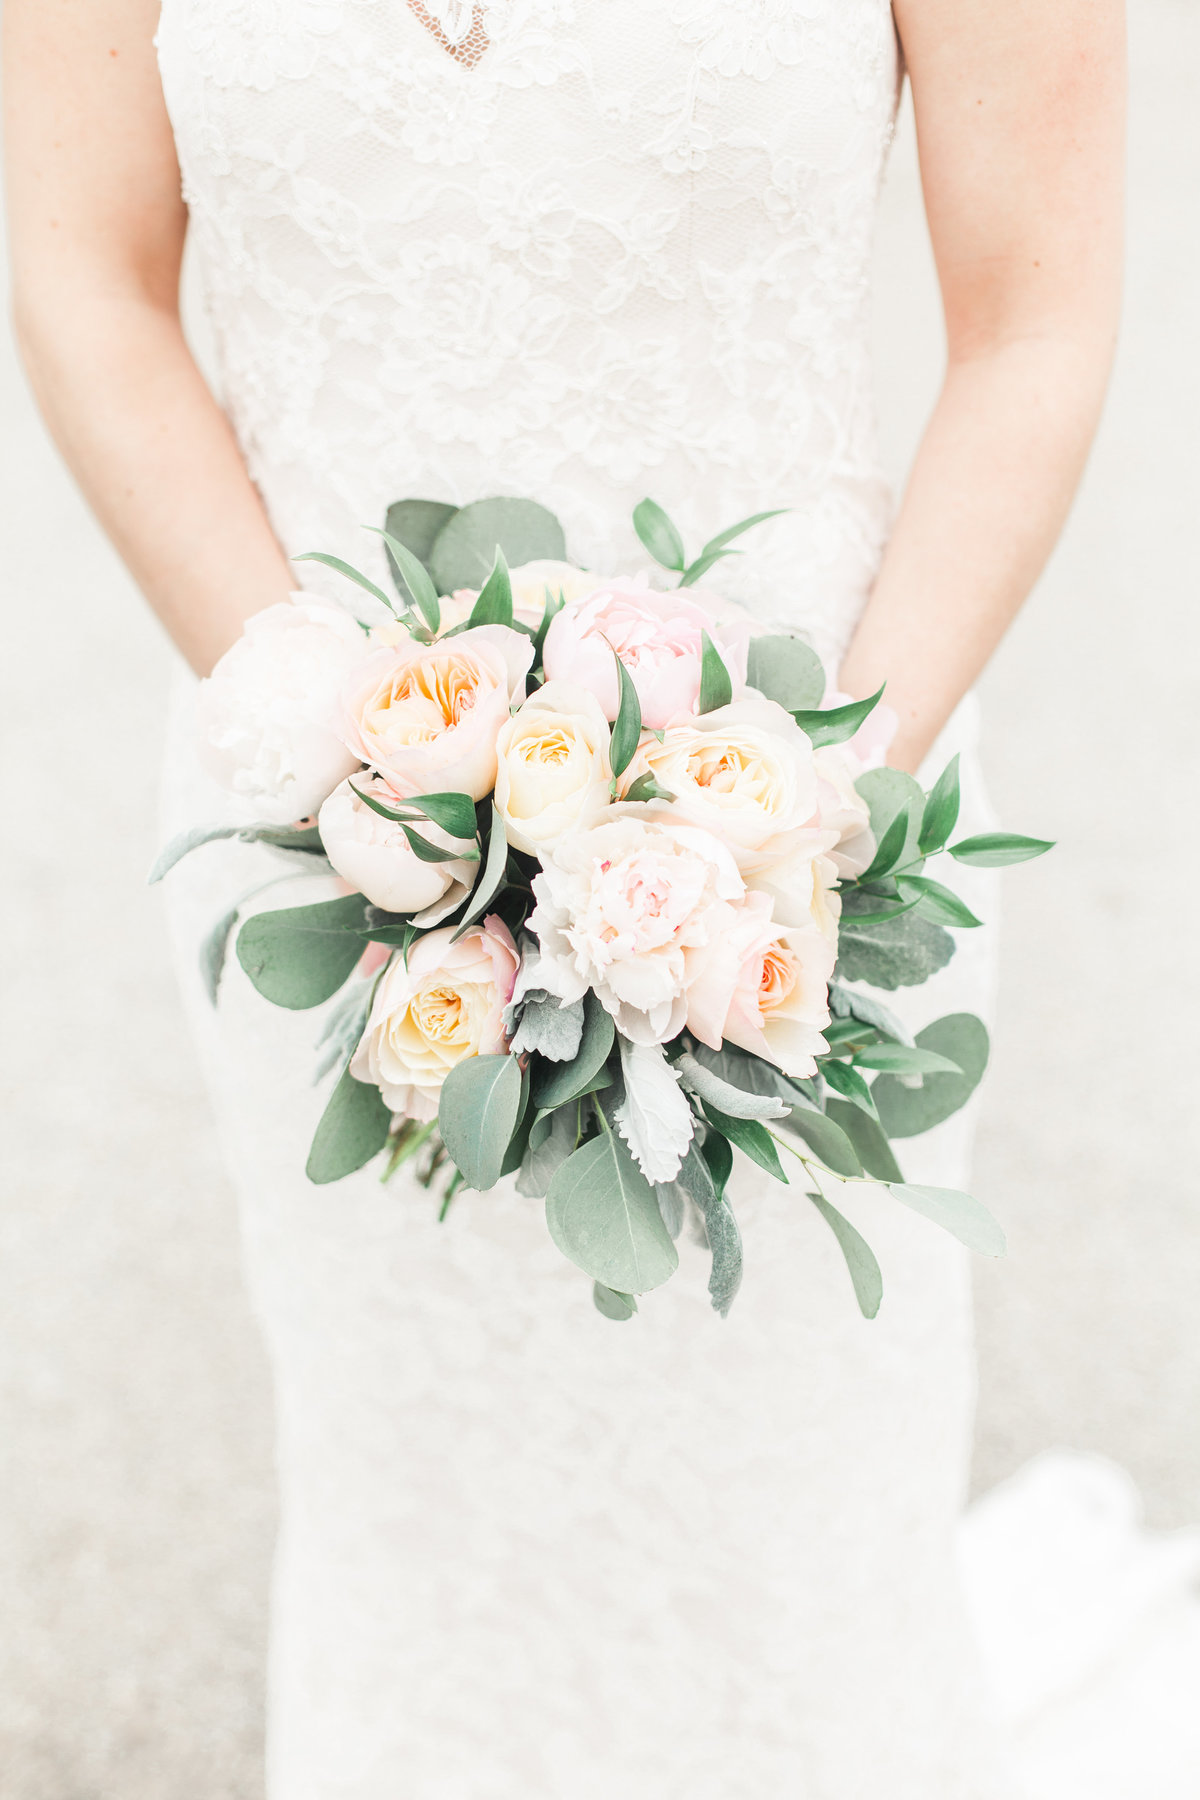 Bridal bouquet with peonies, roses, and eucalyptus